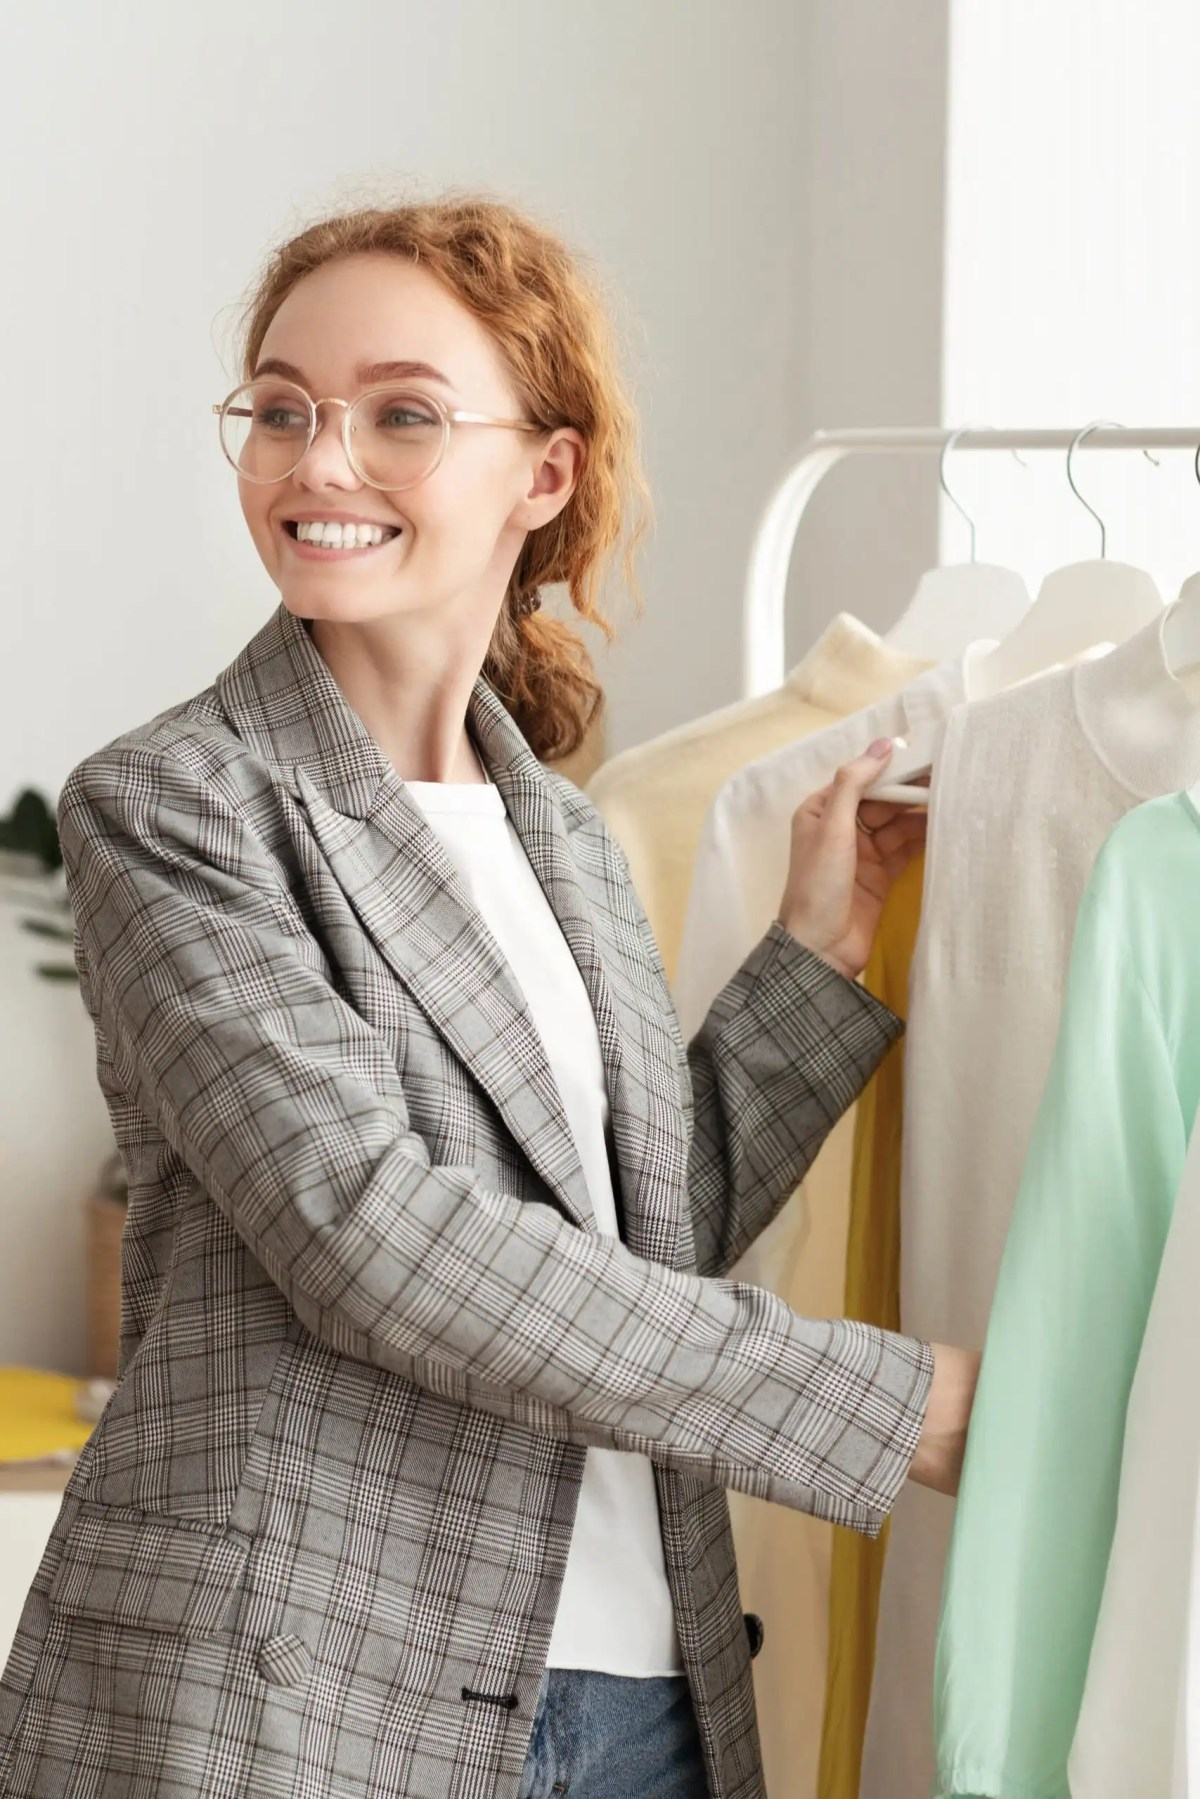 Fashion Closet Concept. Happy stylish girl in glasses choosing designer clothing on hangers, copy space